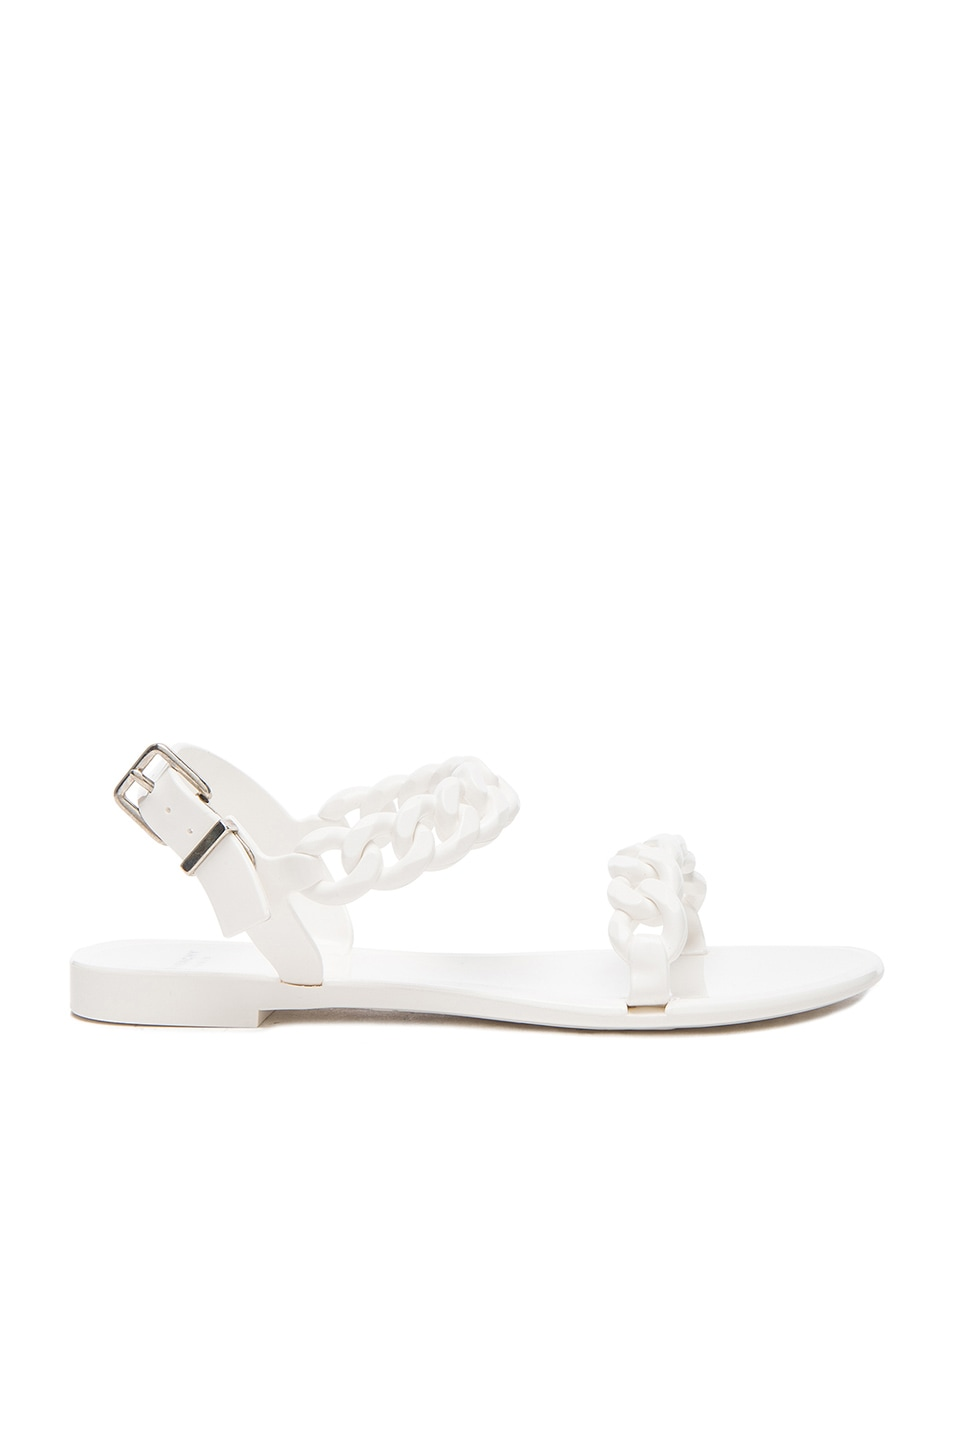 Image 1 of GIVENCHY Flat Jelly Chain Sandals in White